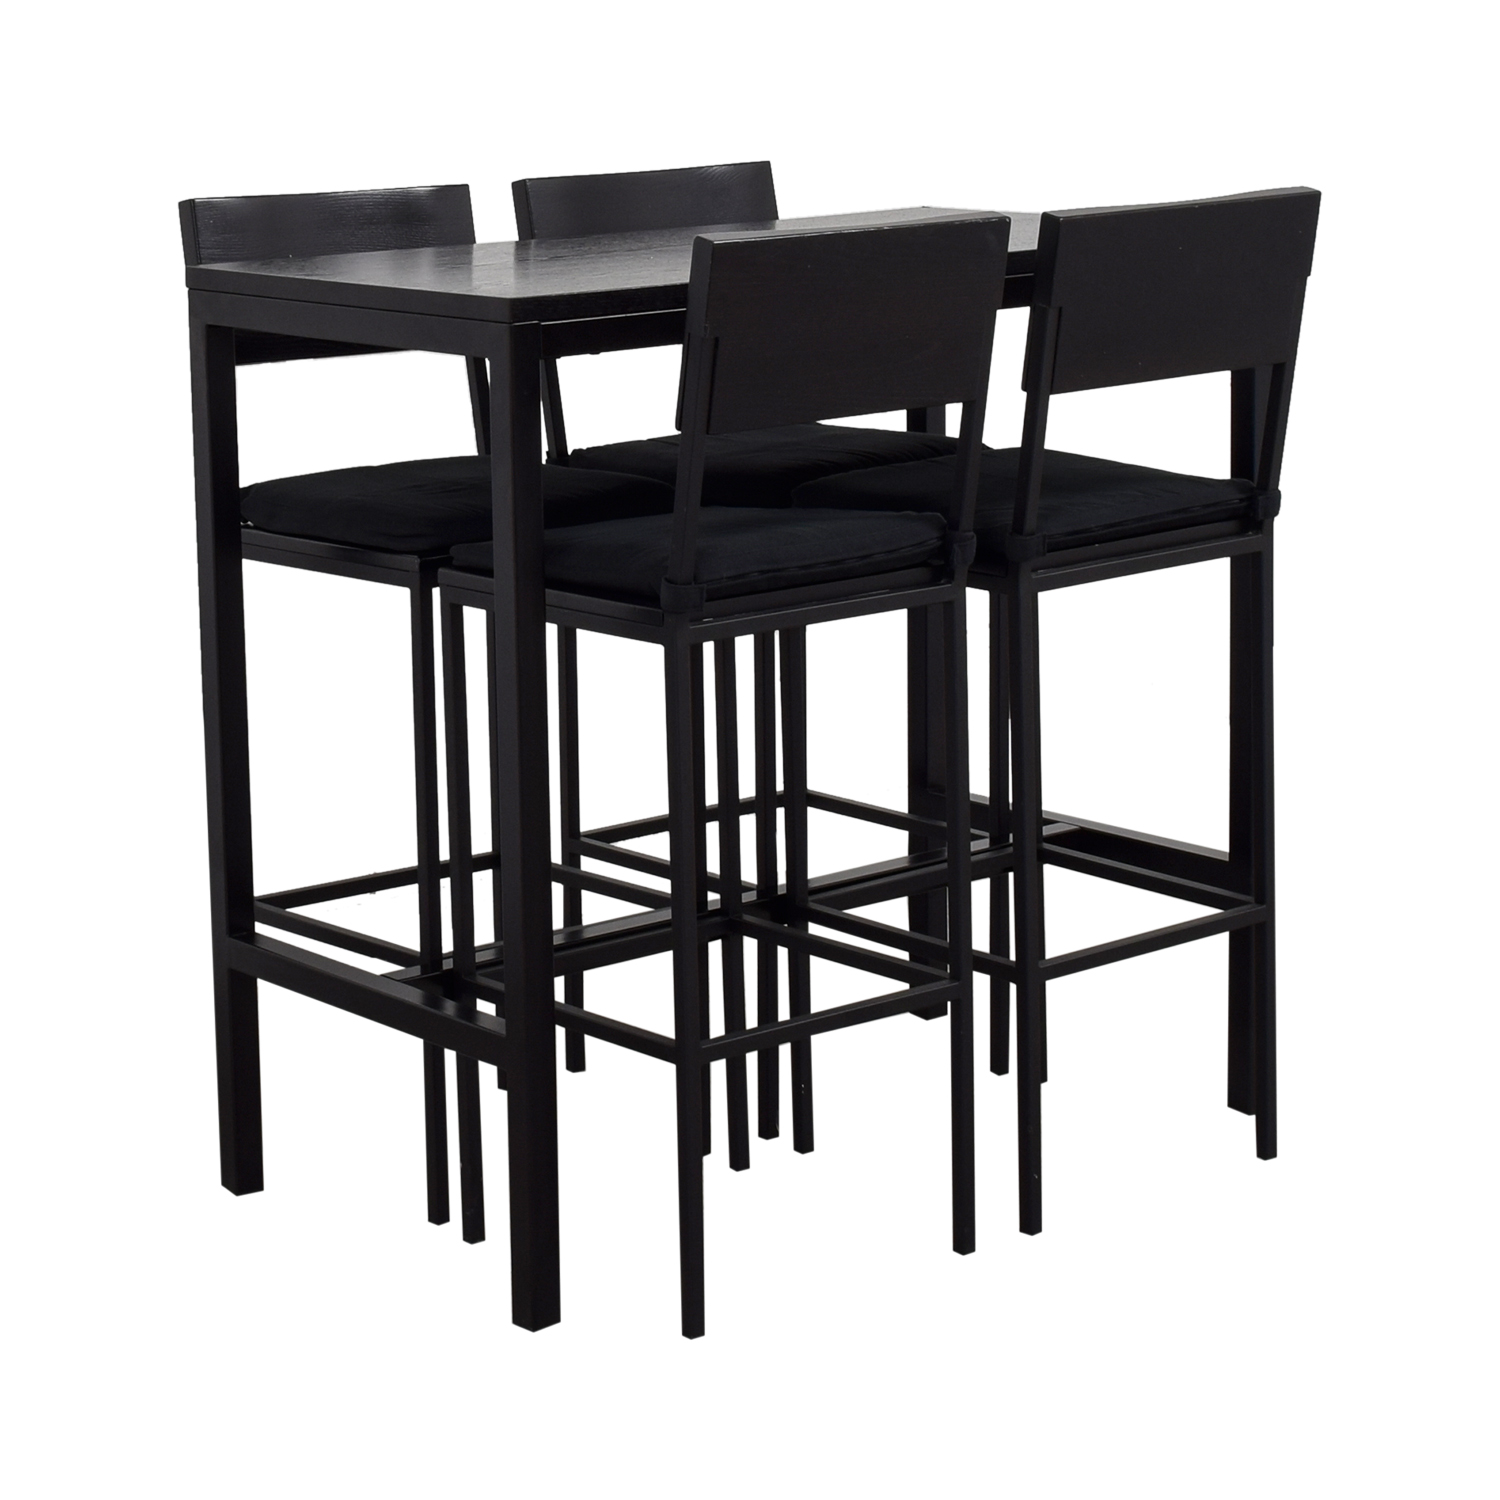 Crate & Barrel Crate & Barrel Black Tall Kitchen Dining Set Tables